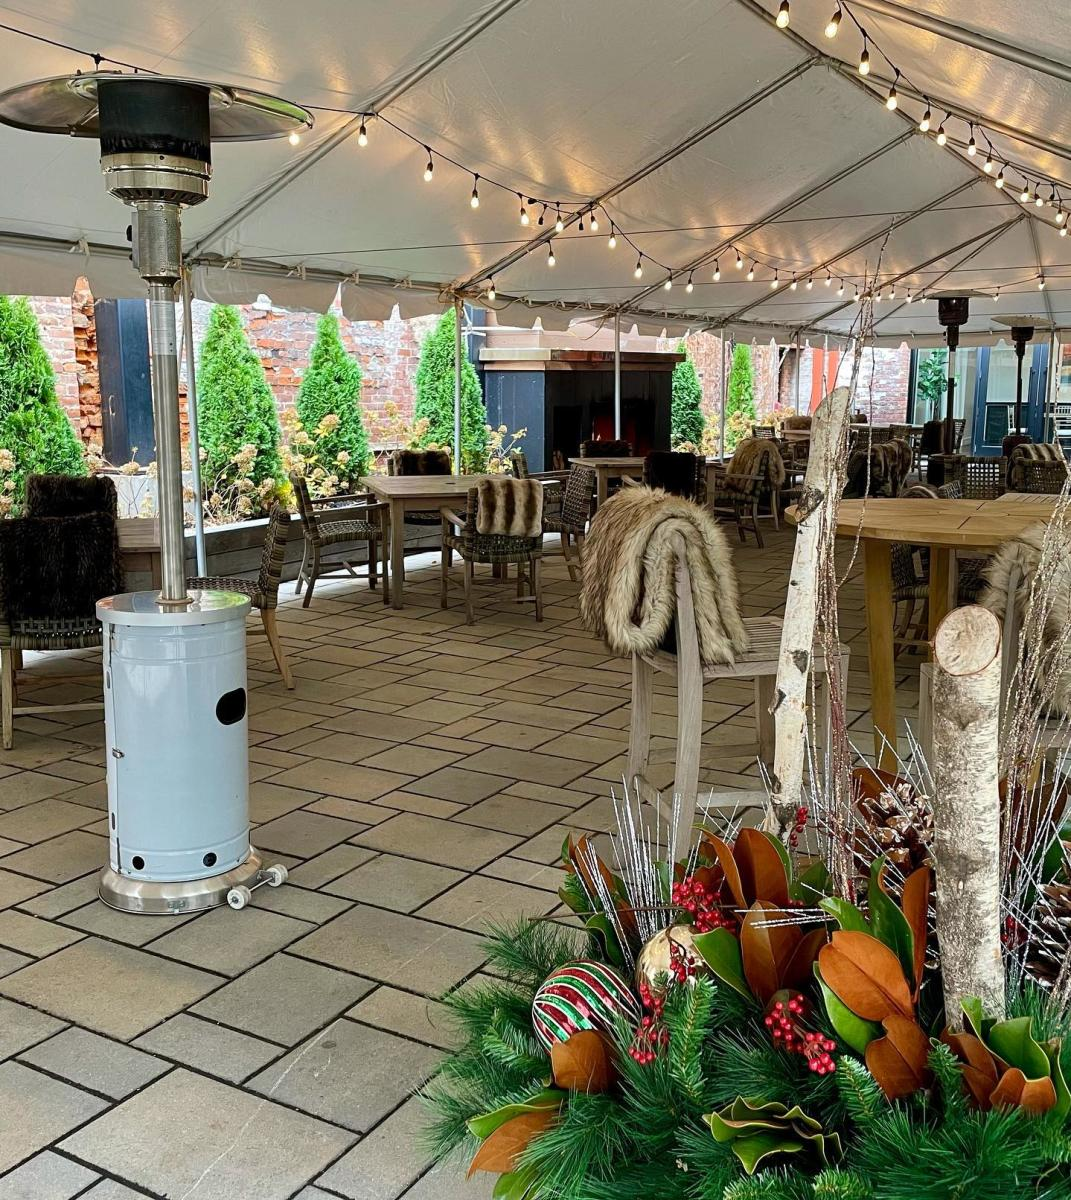 Tented patio with string lights, gas heaters, and faux furs at the tables of Coppin's restaurant